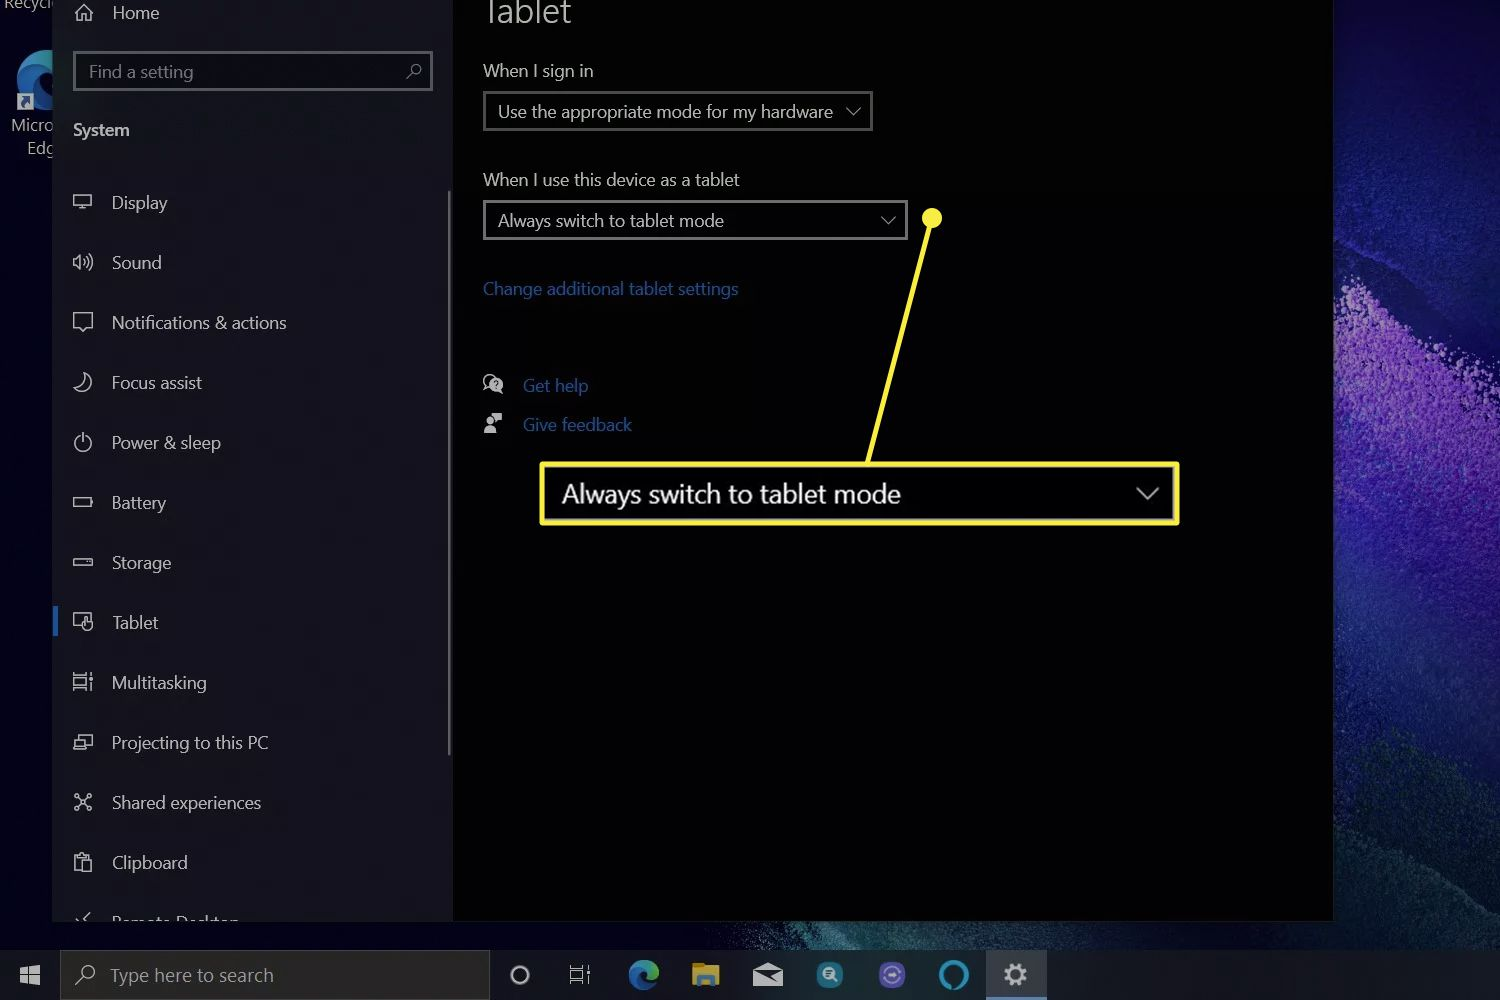 Always switch to tablet mode highlighted from Tablet settings in Windows 10.